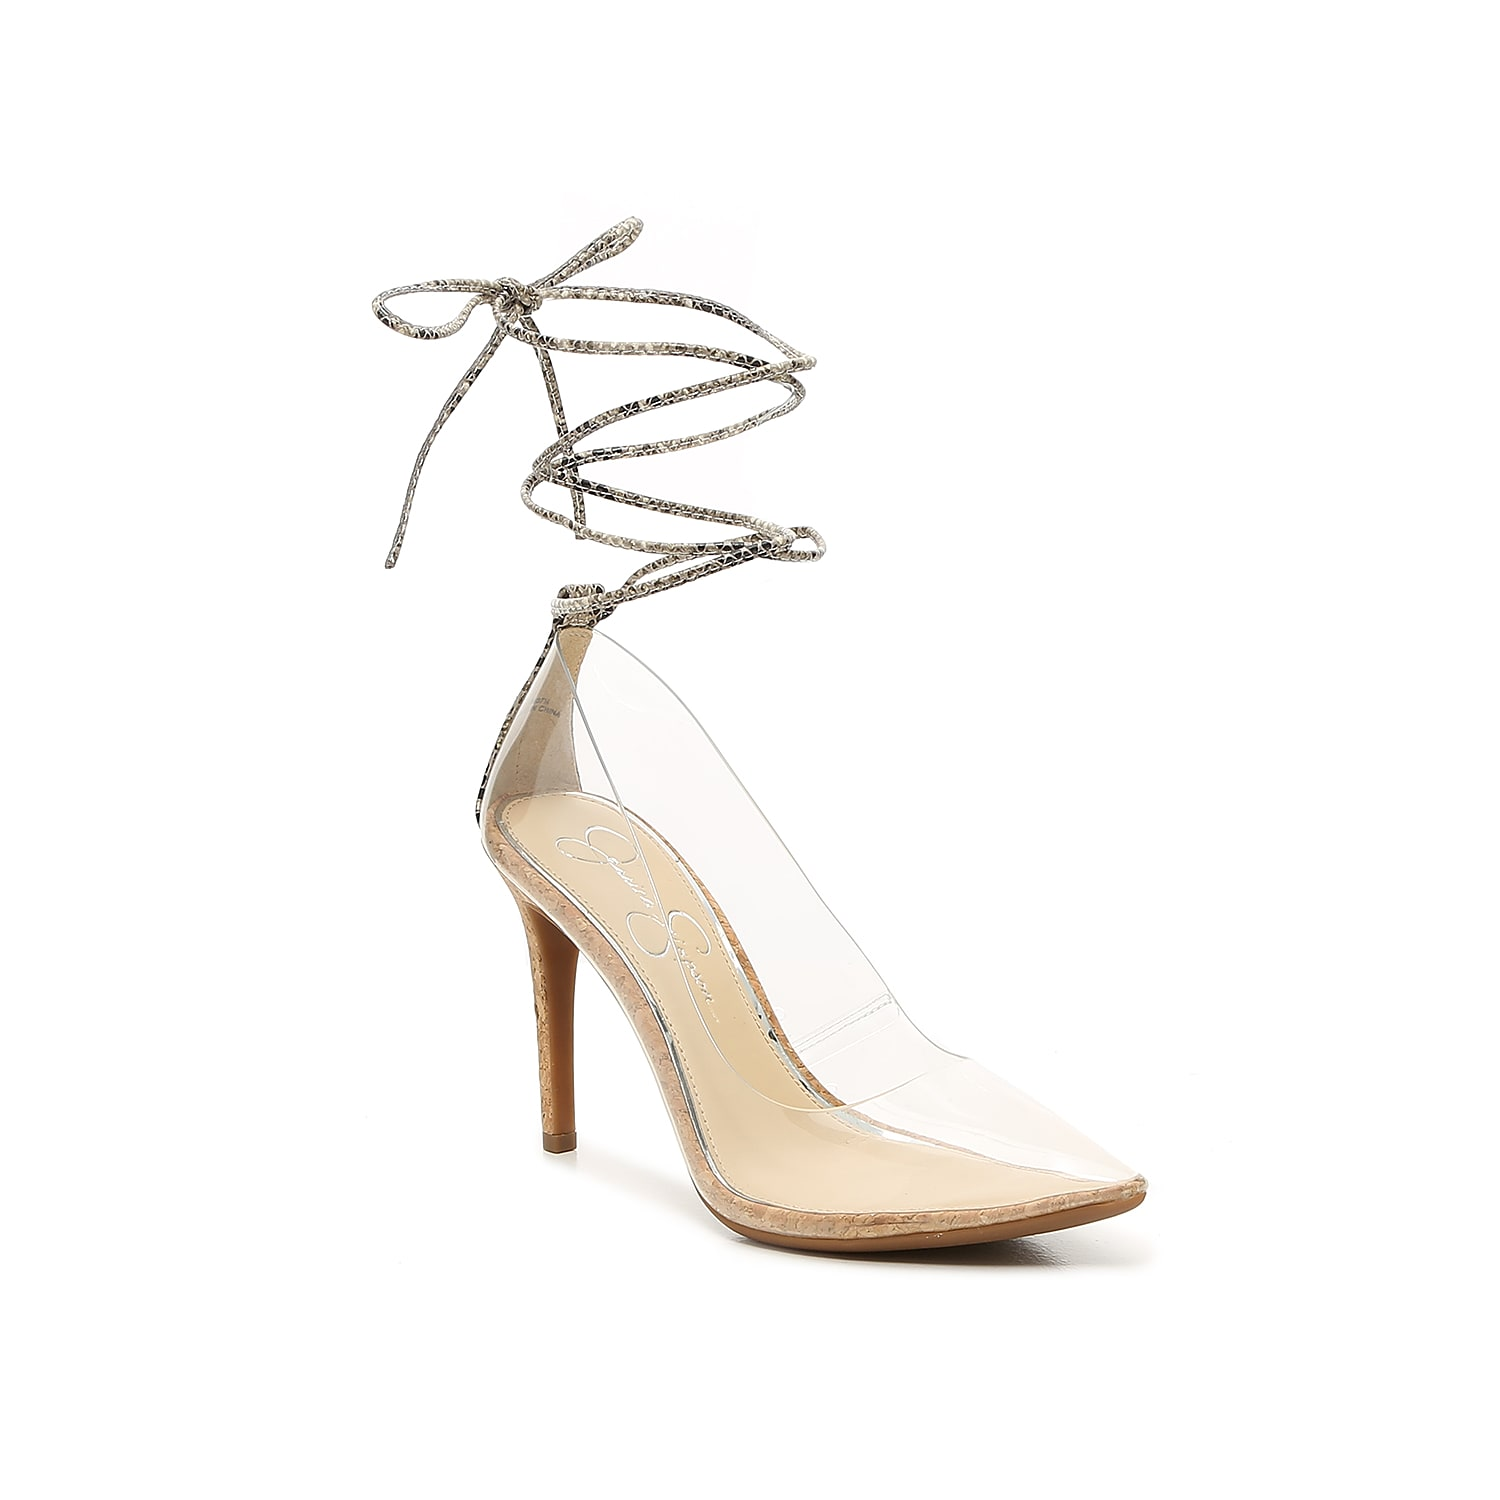 The Harleen pump from Jessica Simpson gives the iconic silhouette a refreshing take with see-through lucite, pops of pattern, and a lacy ankle-tie closure. The pointed illusion toe reveals your latest pedicure!